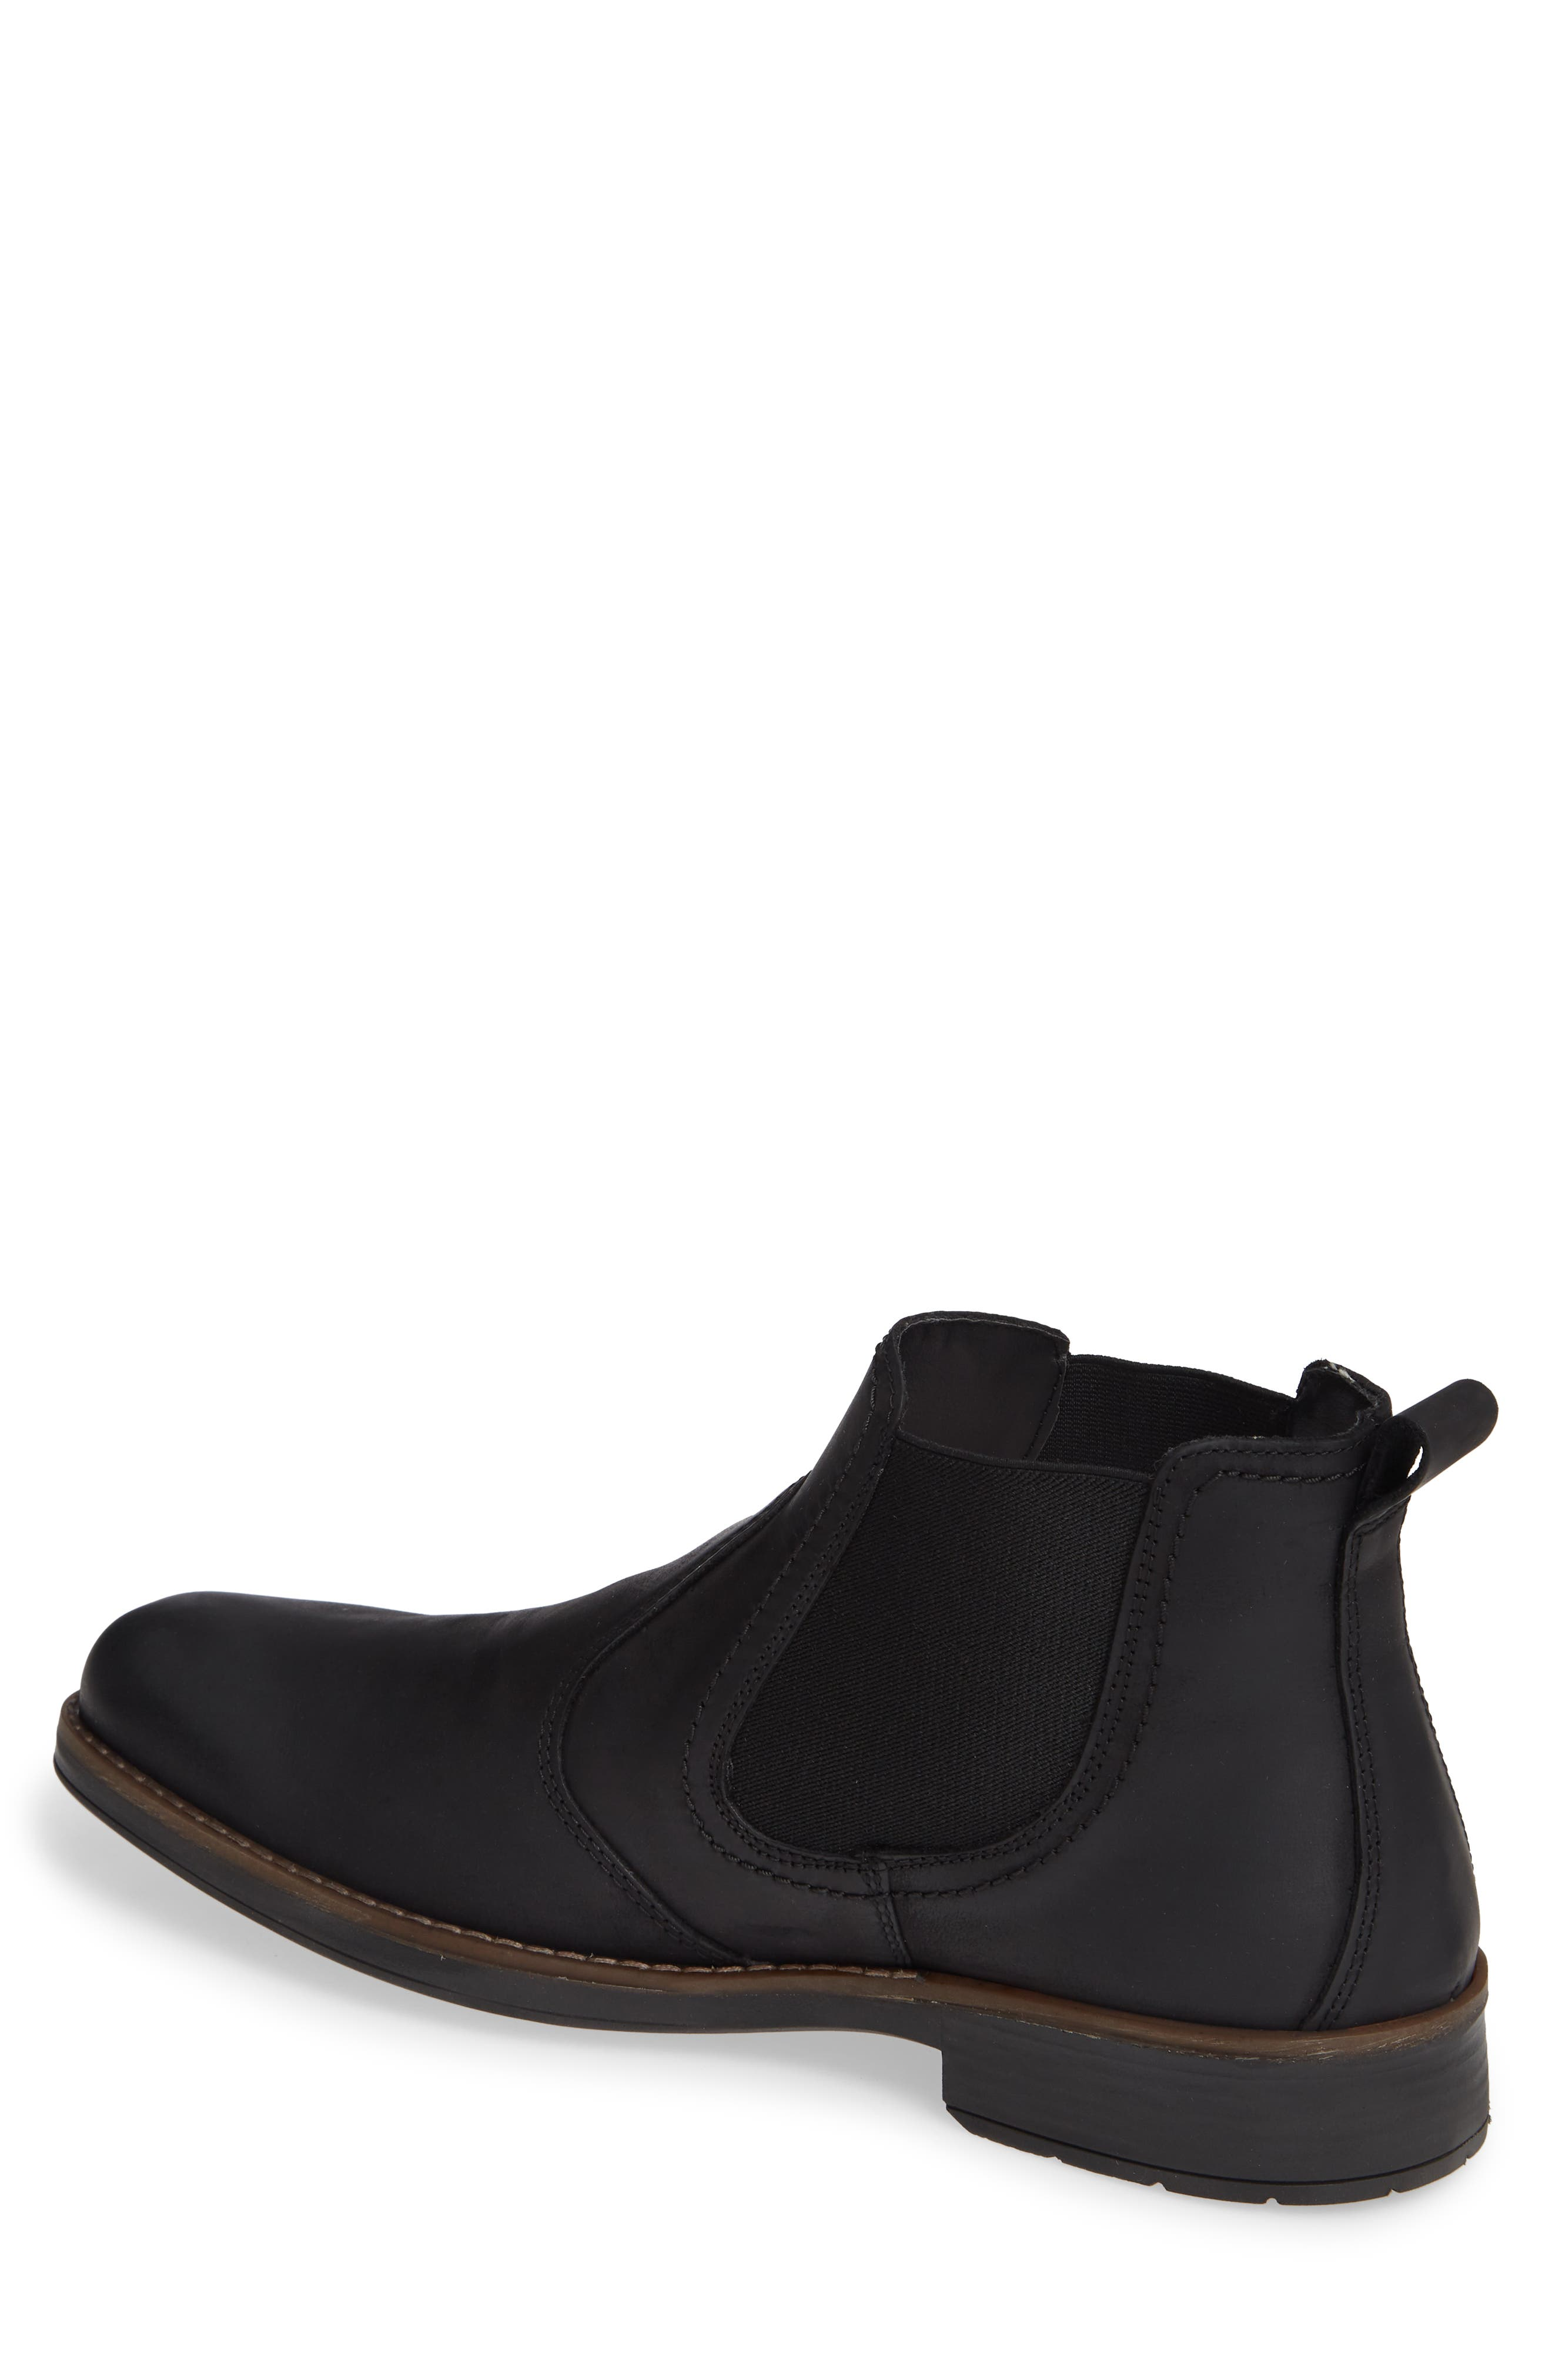 Maple Waterproof Chelsea Boot,                             Alternate thumbnail 2, color,                             BLACK LEATHER